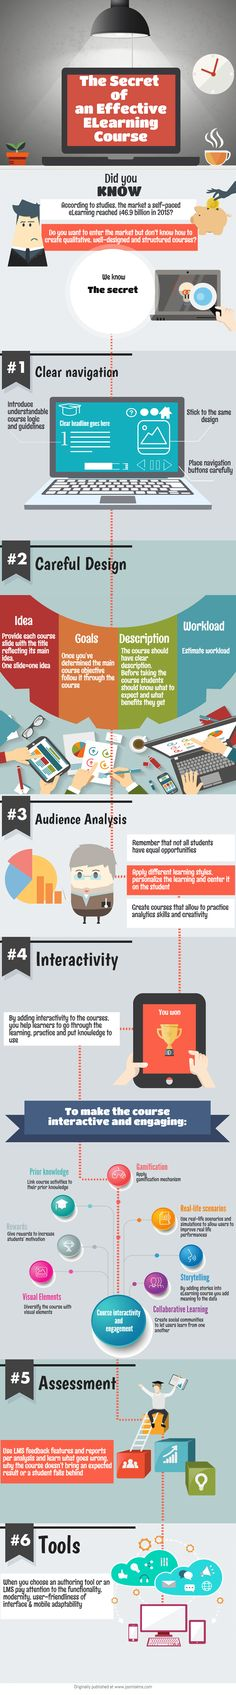 The Secret of an Effective eLearning Course Infographic - http://elearninginfographics.com/secret-effective-elearning-course-infographic/